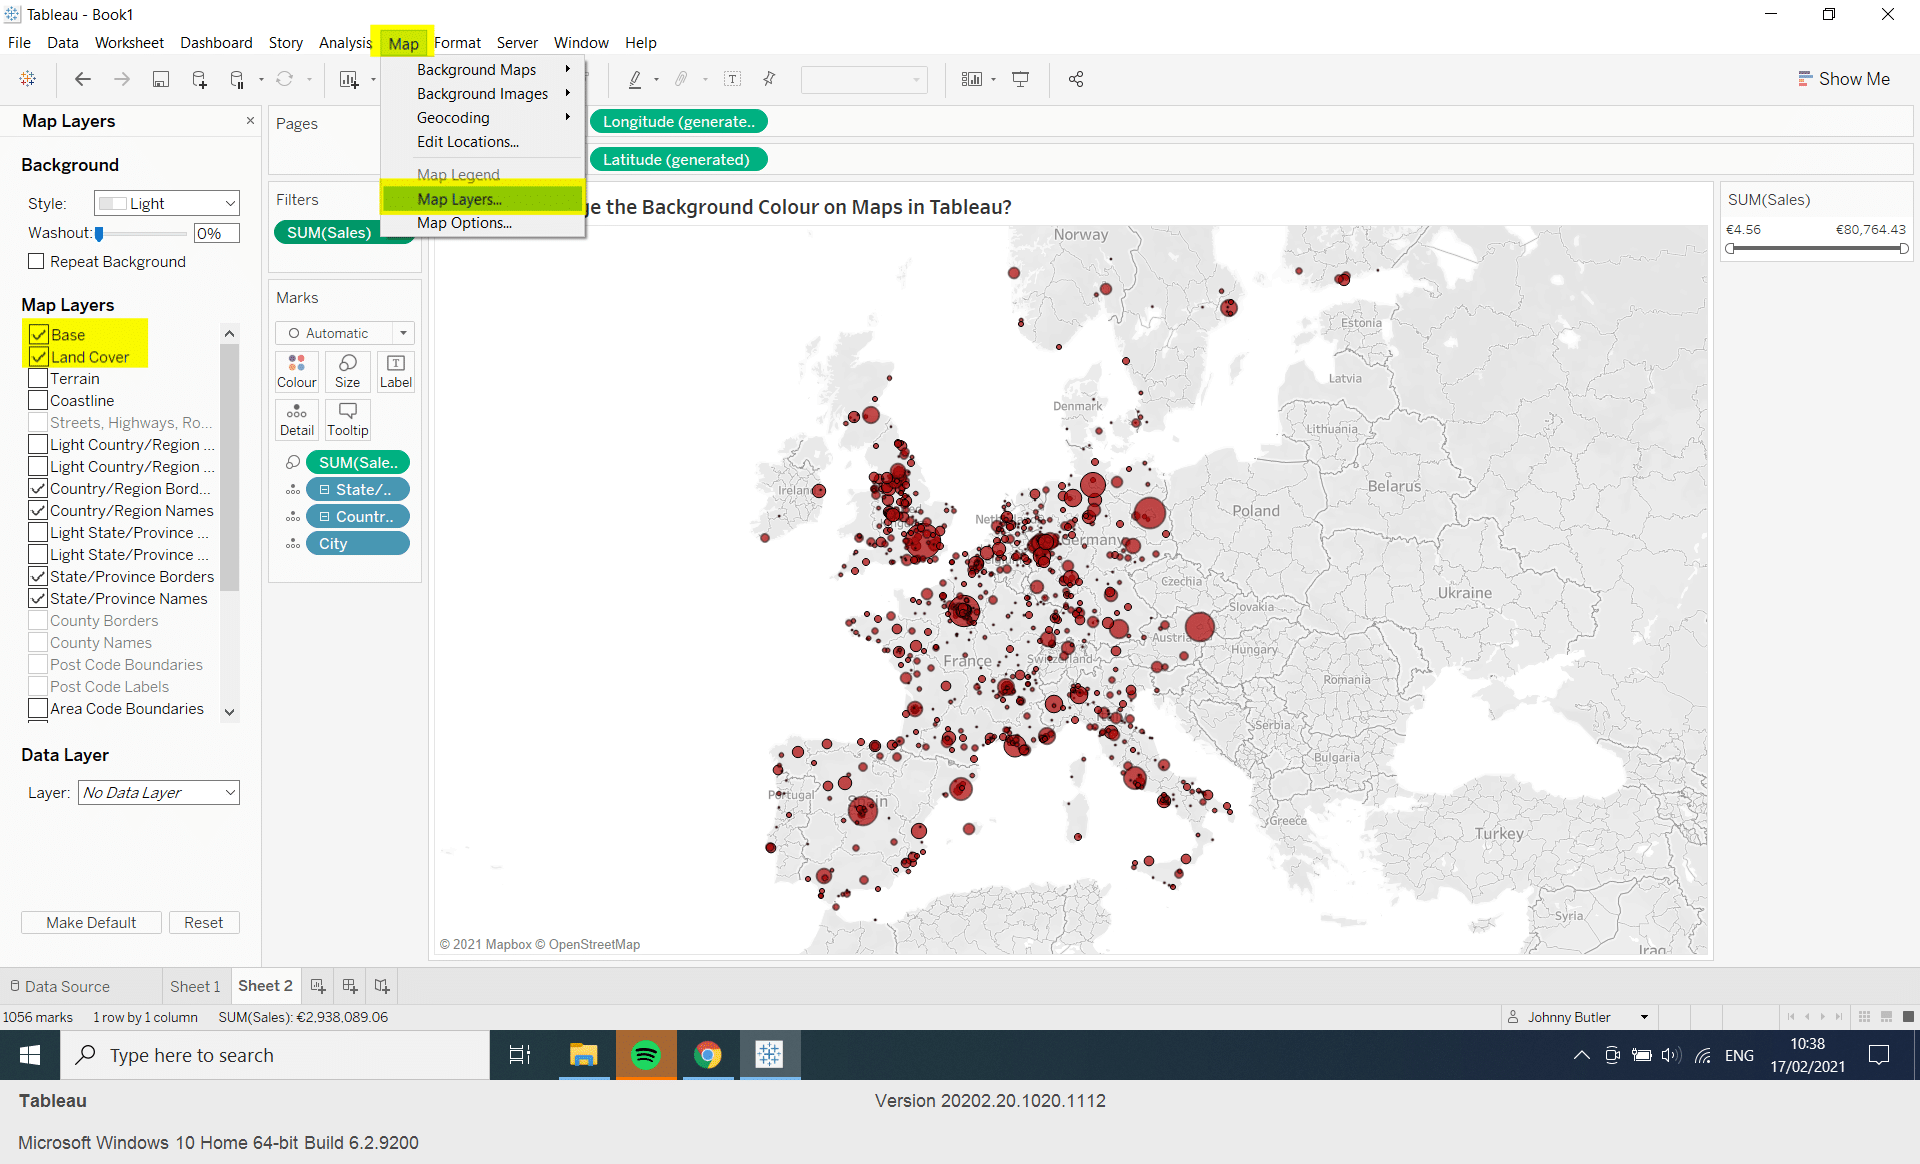 Change Background Colour on a Map in Tableau